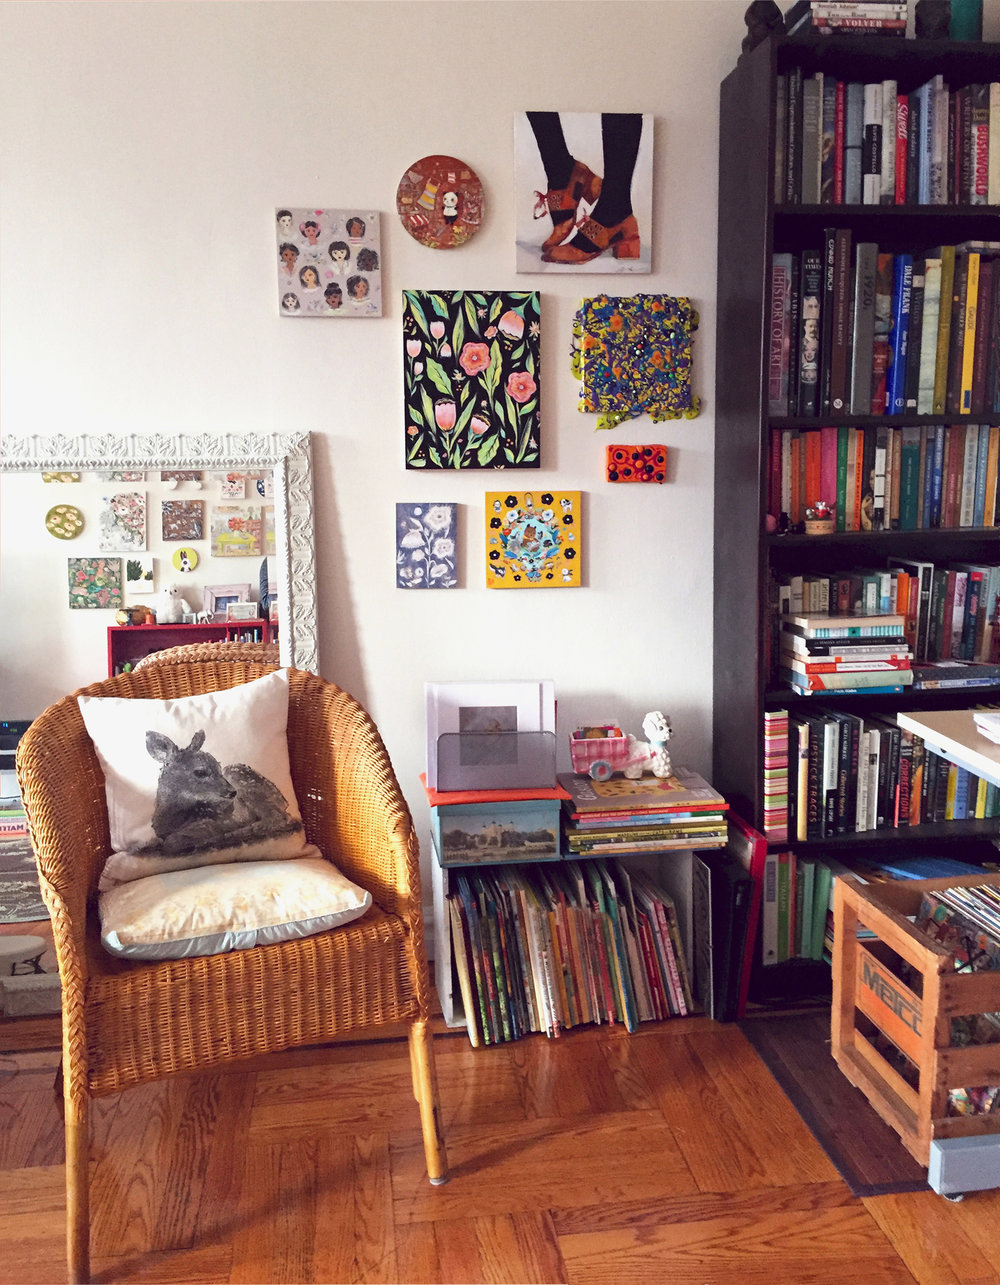 Allyn_Howard_Book corner.jpg